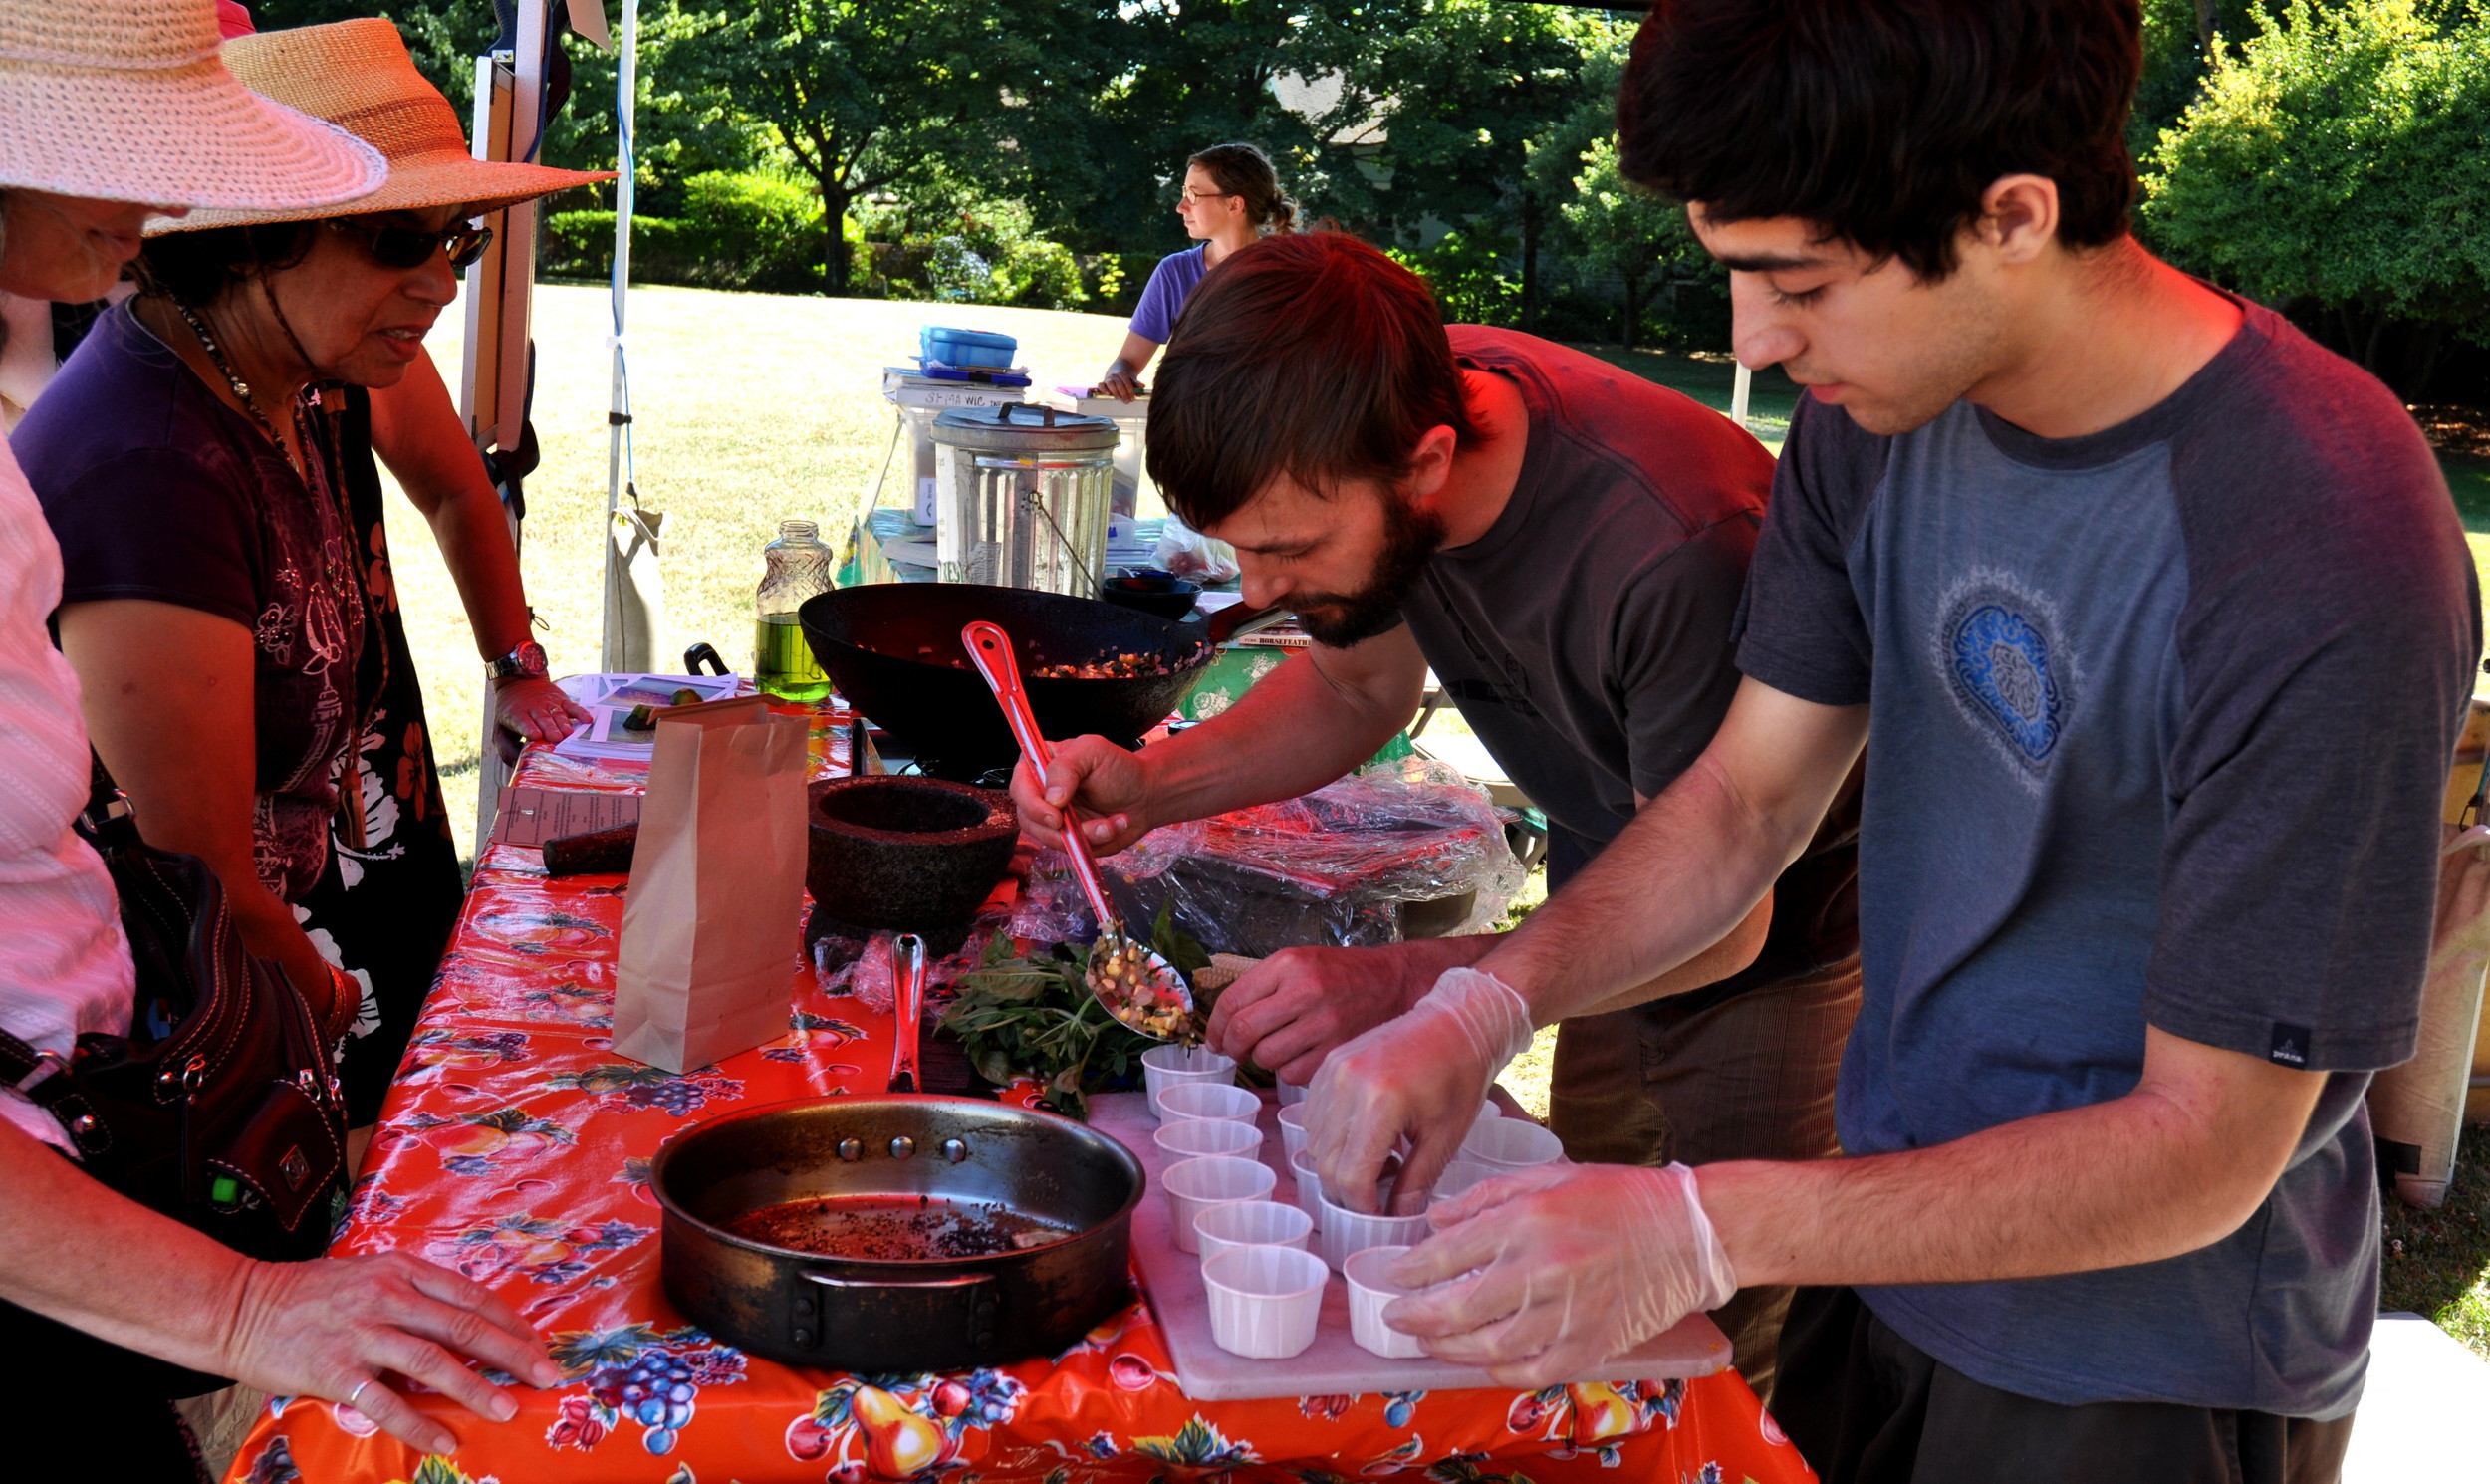 Chef Colin Patterson of Sutra Vegetarian Cuisine (center) and Jeremy Kaplan (right, foreground) at their cooking demonstration in 2011. Photo copyright 2011 by Zachary D. Lyons.